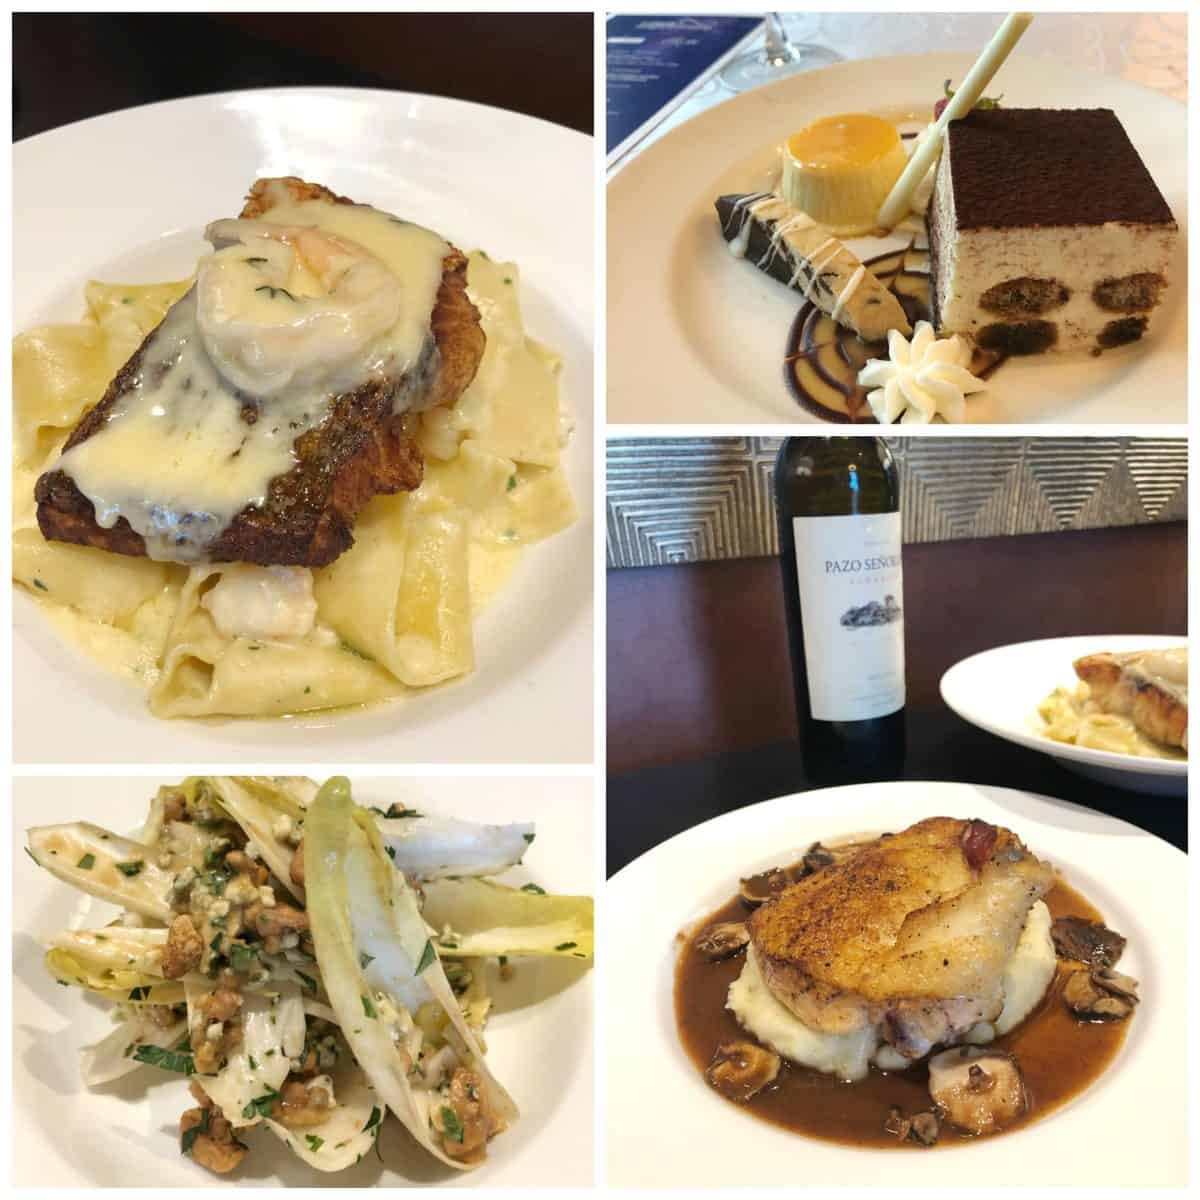 4 photo collage of dessert, appetizer, pasta dish, and fish dish.